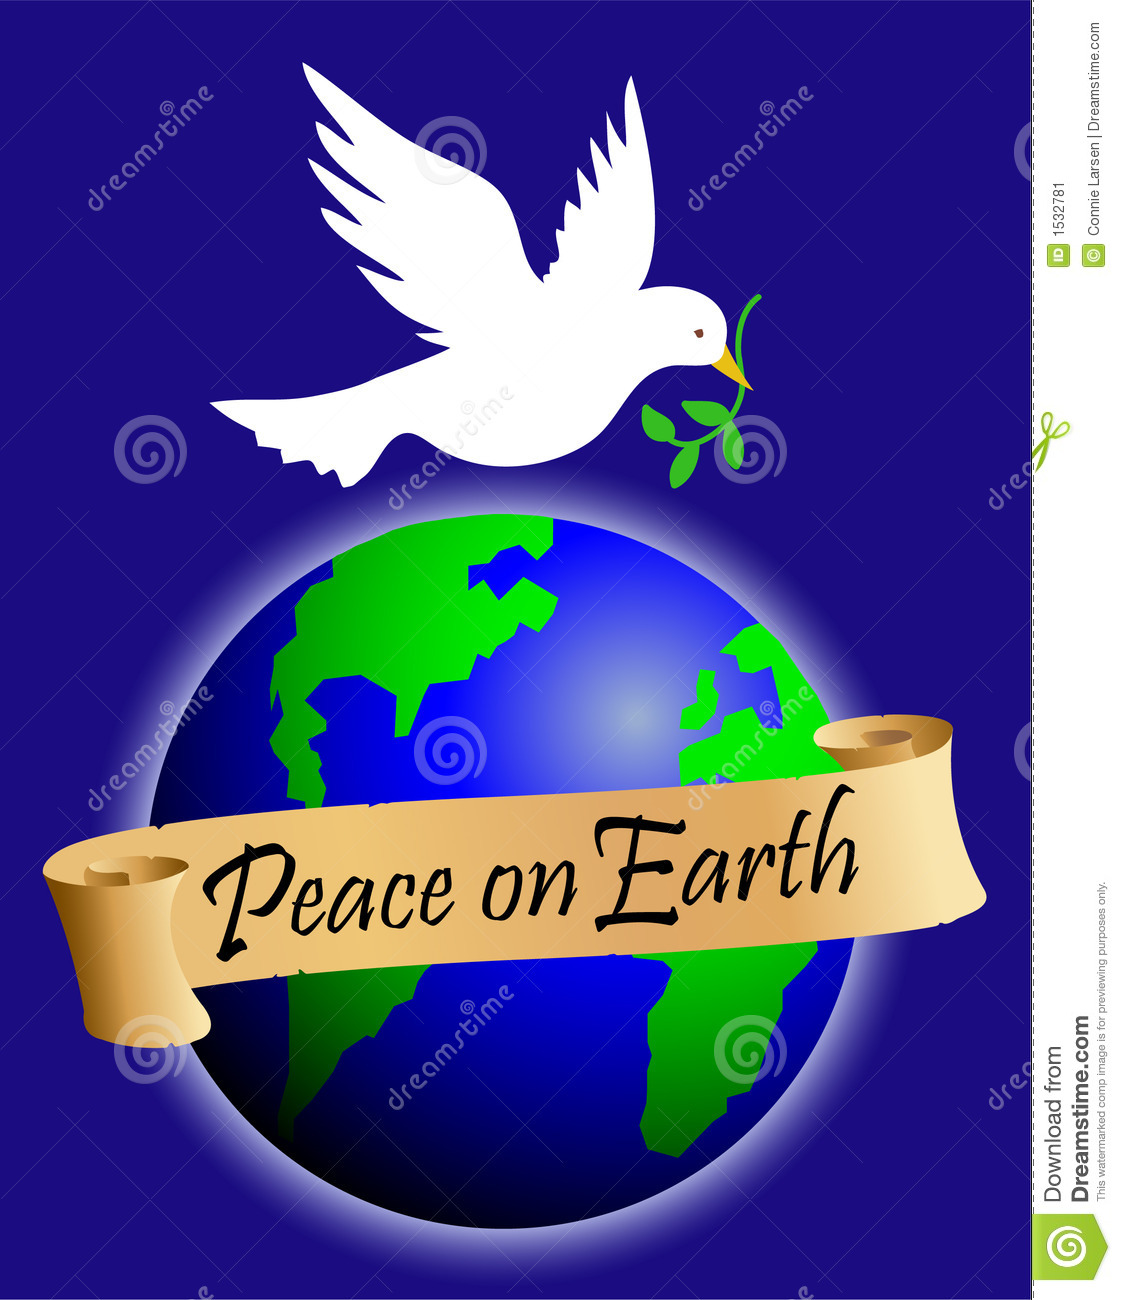 free christmas peace on earth clipart - photo #12